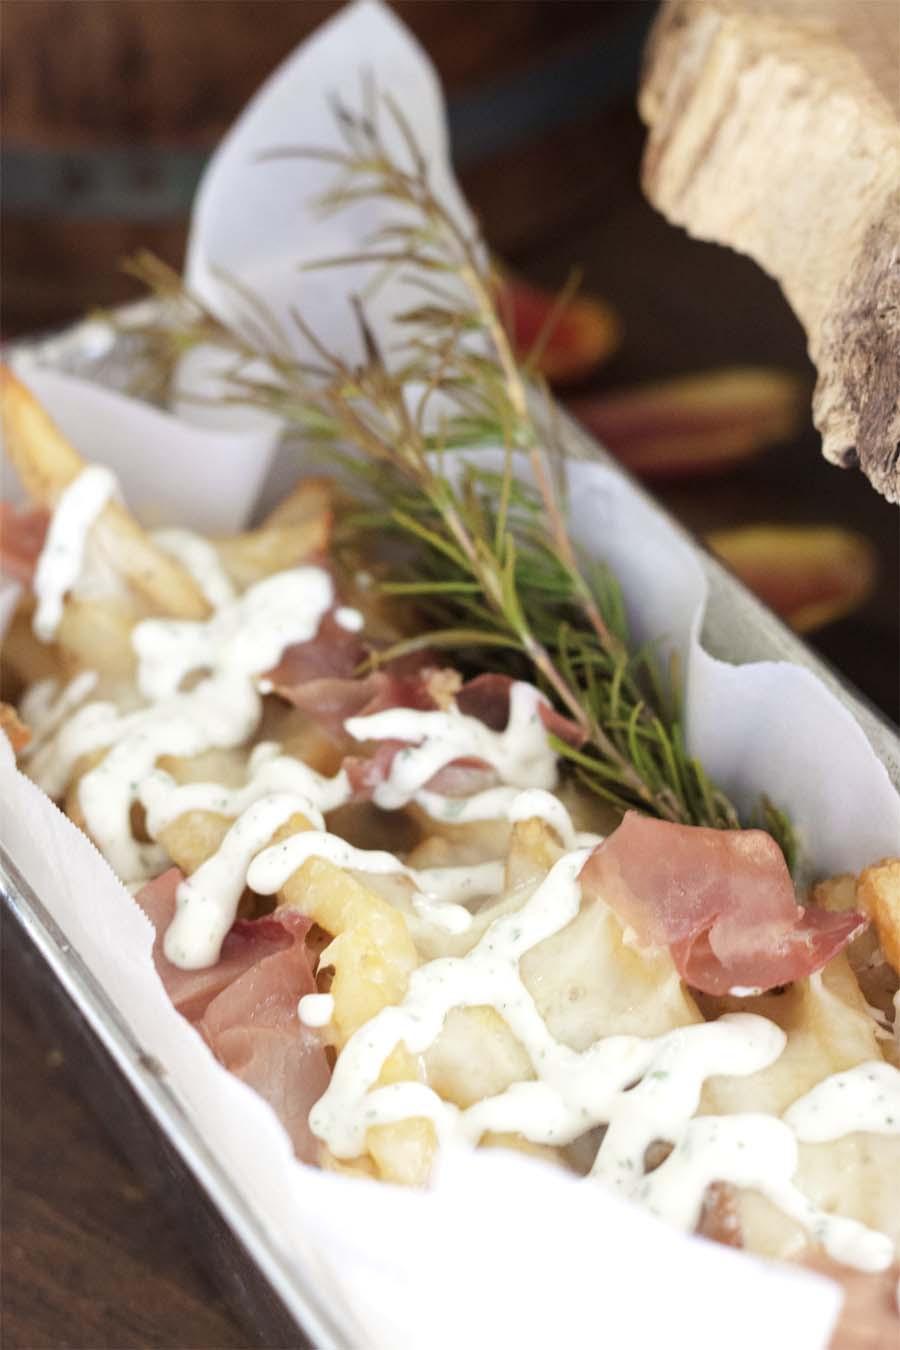 Loaded White Truffle Rosemary Fries